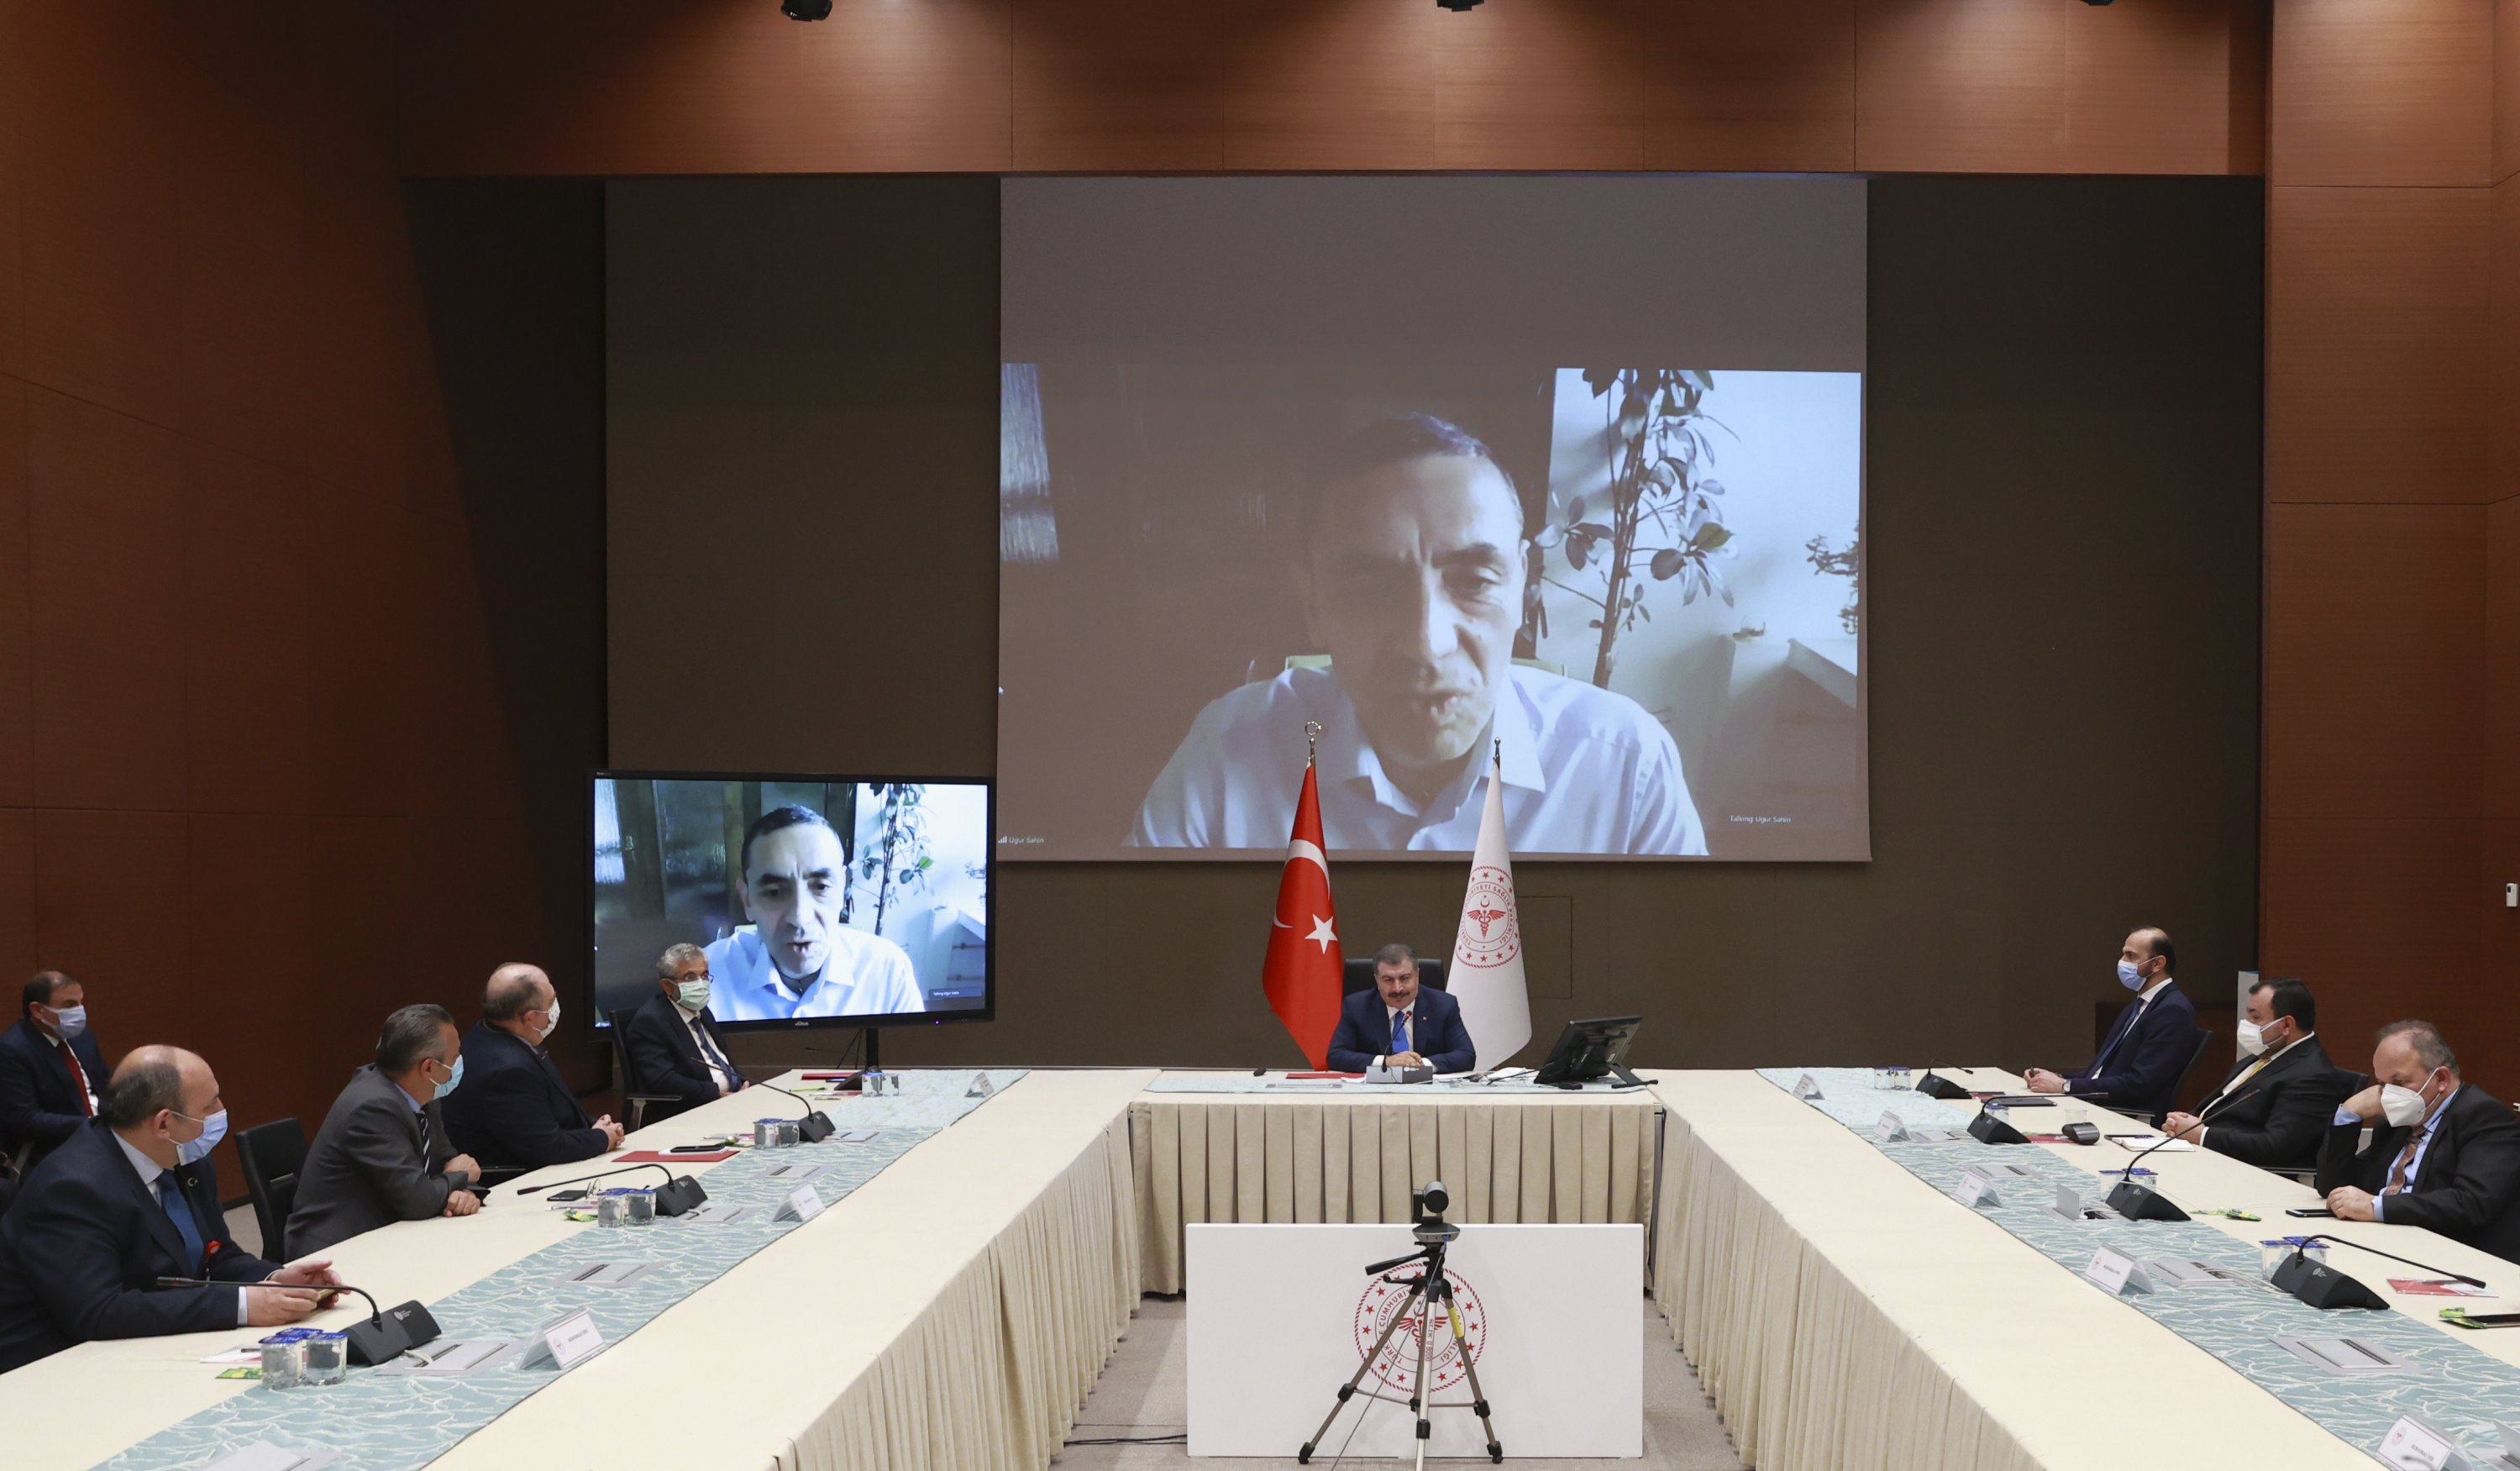 German pharmaceutical company BioNTech's CEO Ugur Şahin participates in a meeting of Turkey's health advisory council via teleconference from Germany, in Ankara, Turkey, May 20, 2021. (AP Photo)